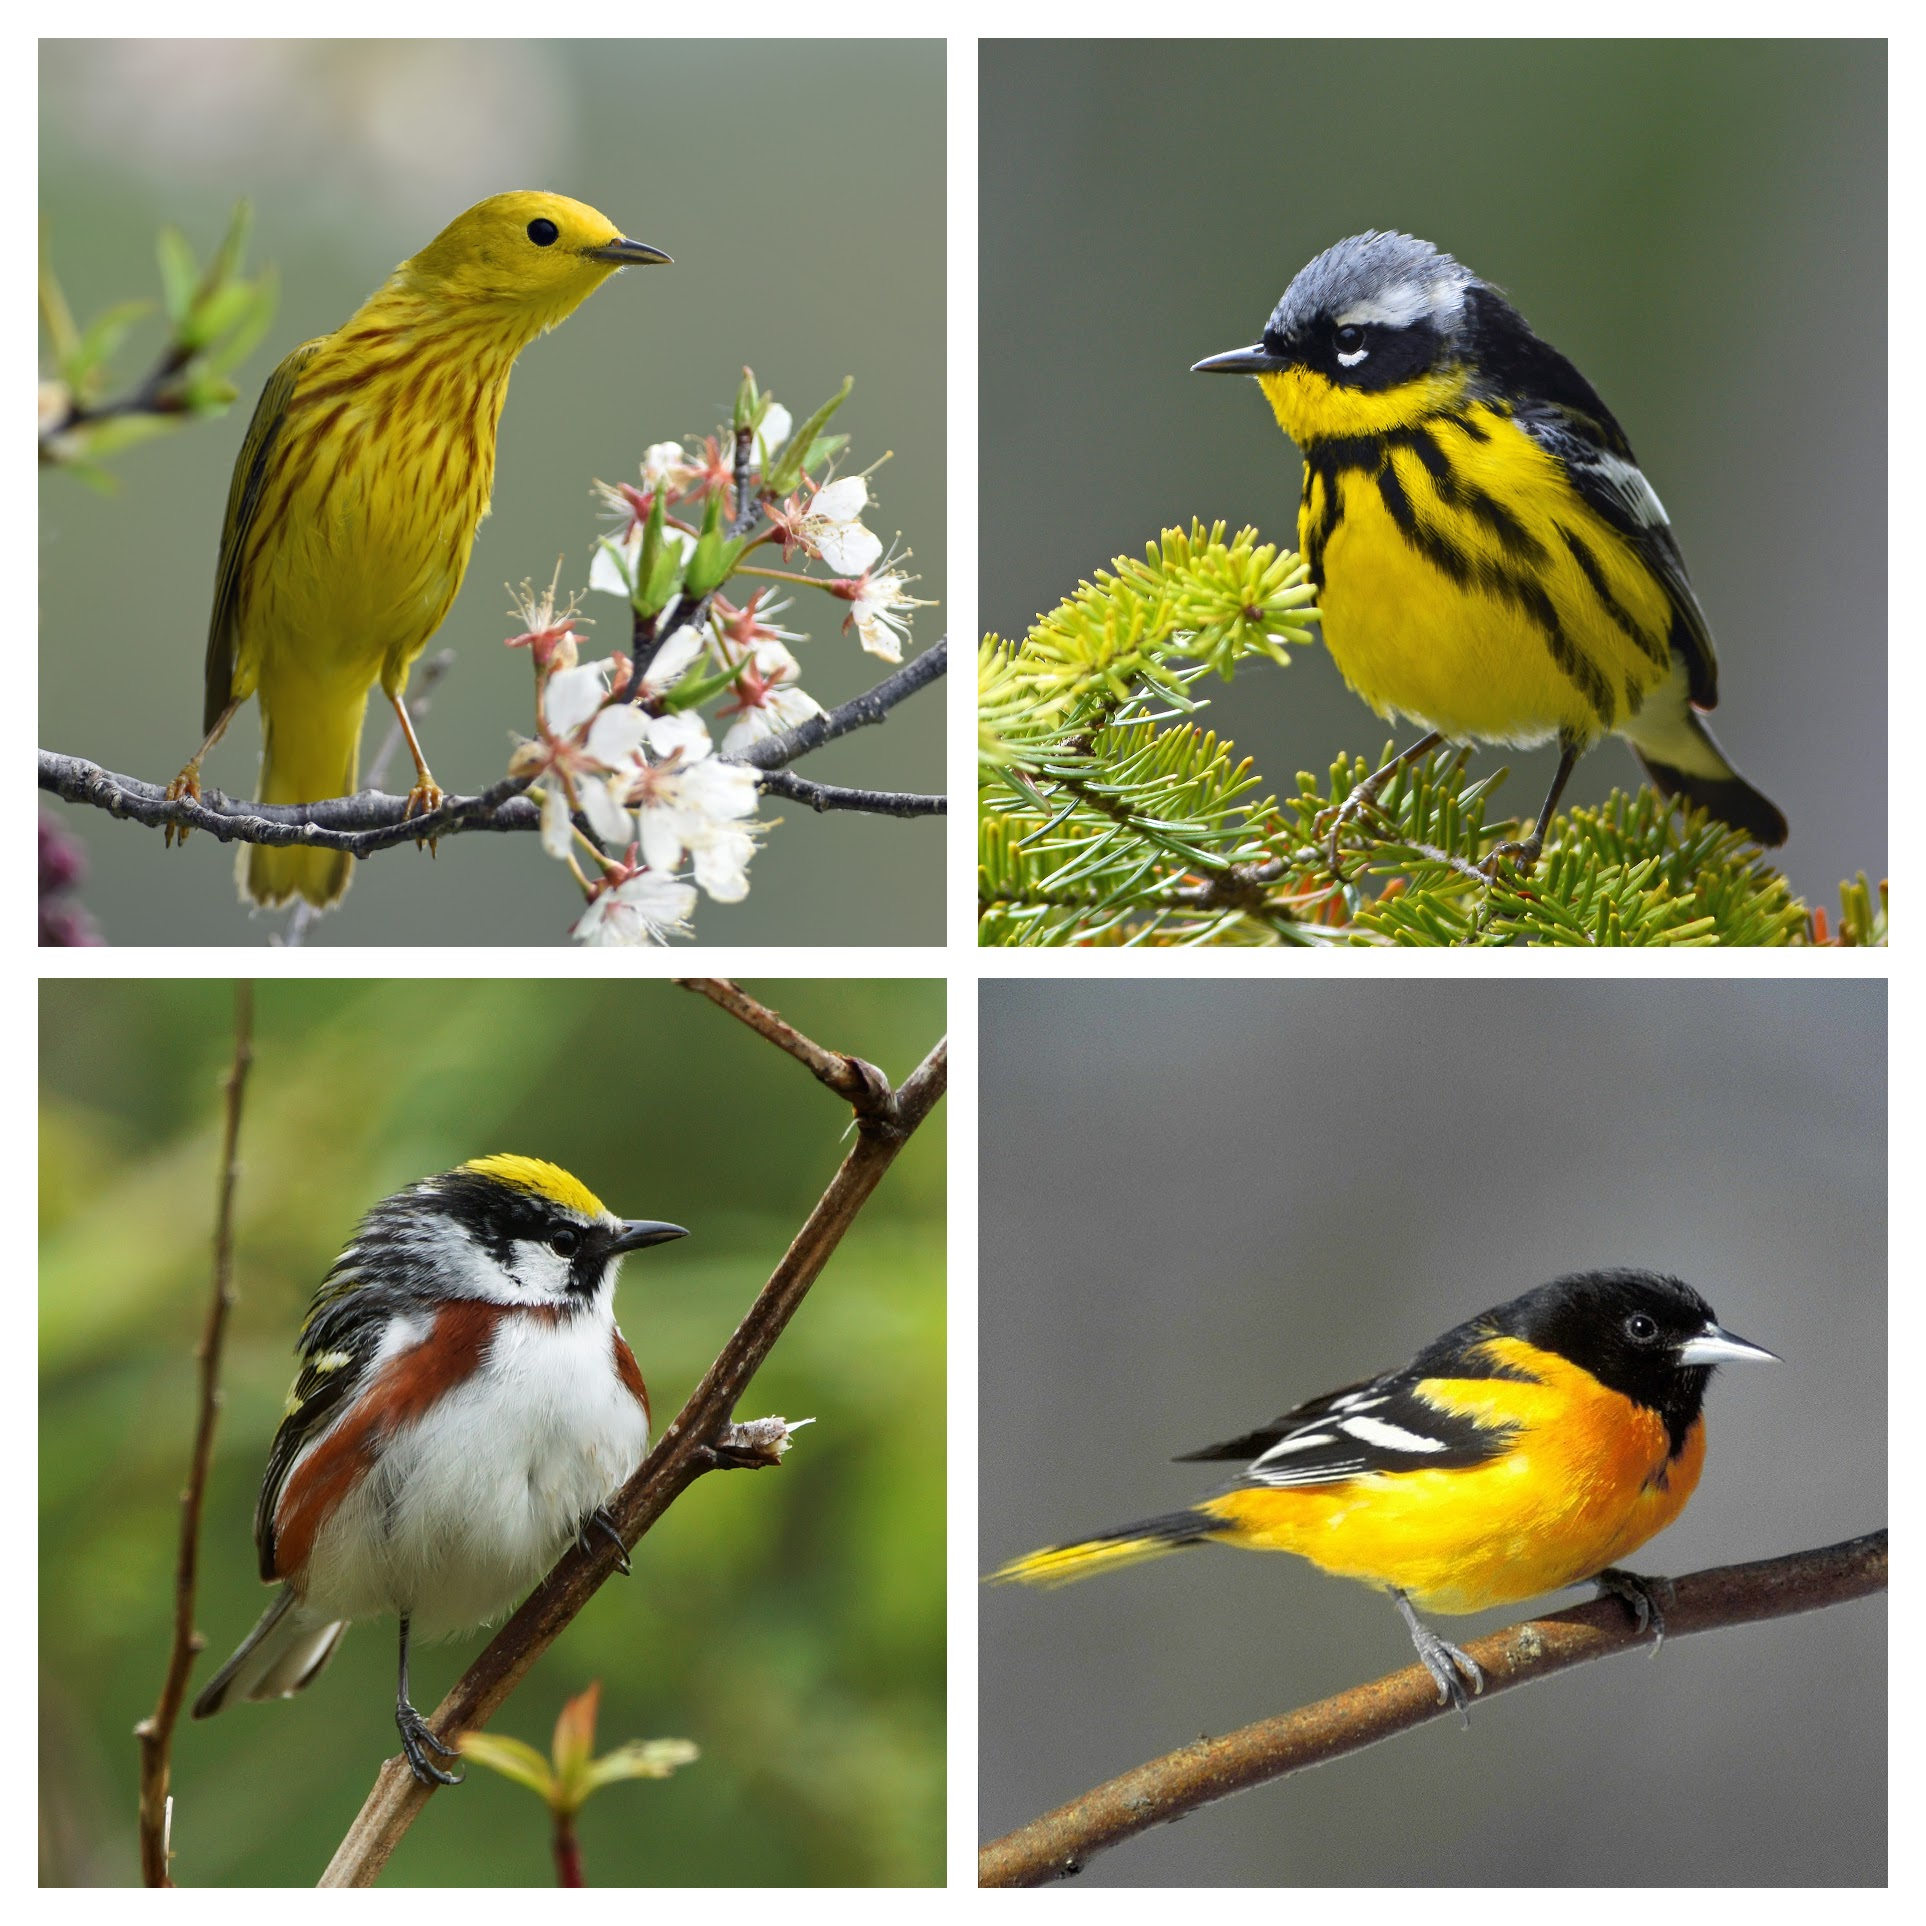 Bird Friendly® coffee plantations provide quality habitat for the Yellow Warbler (upper left), Magnolia Warbler (upper right), Chestnut-sided Warbler (lower left) and Baltimore Oriole (lower right) on their wintering grounds. Warbler photos by  Doug Gimler ; oriole photo - Pixabay.